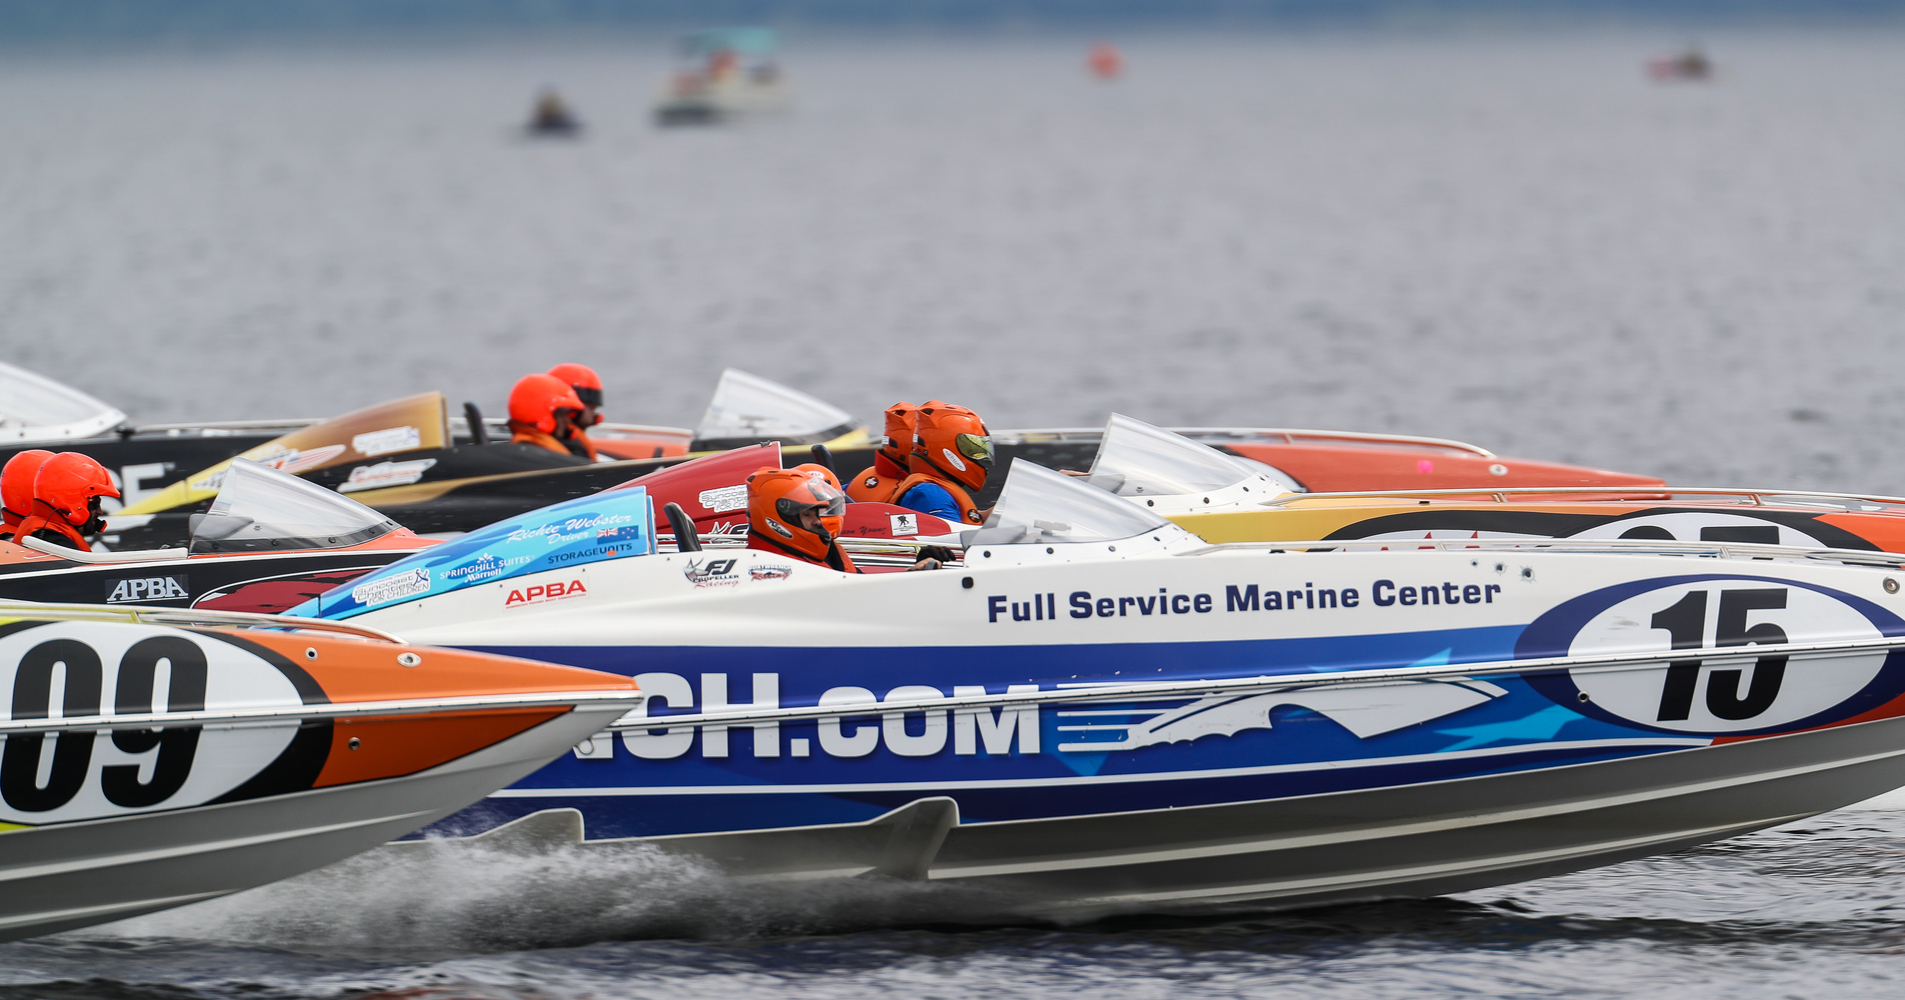 32nd Annual Sarasota Powerboat Grand Prix scheduled for June